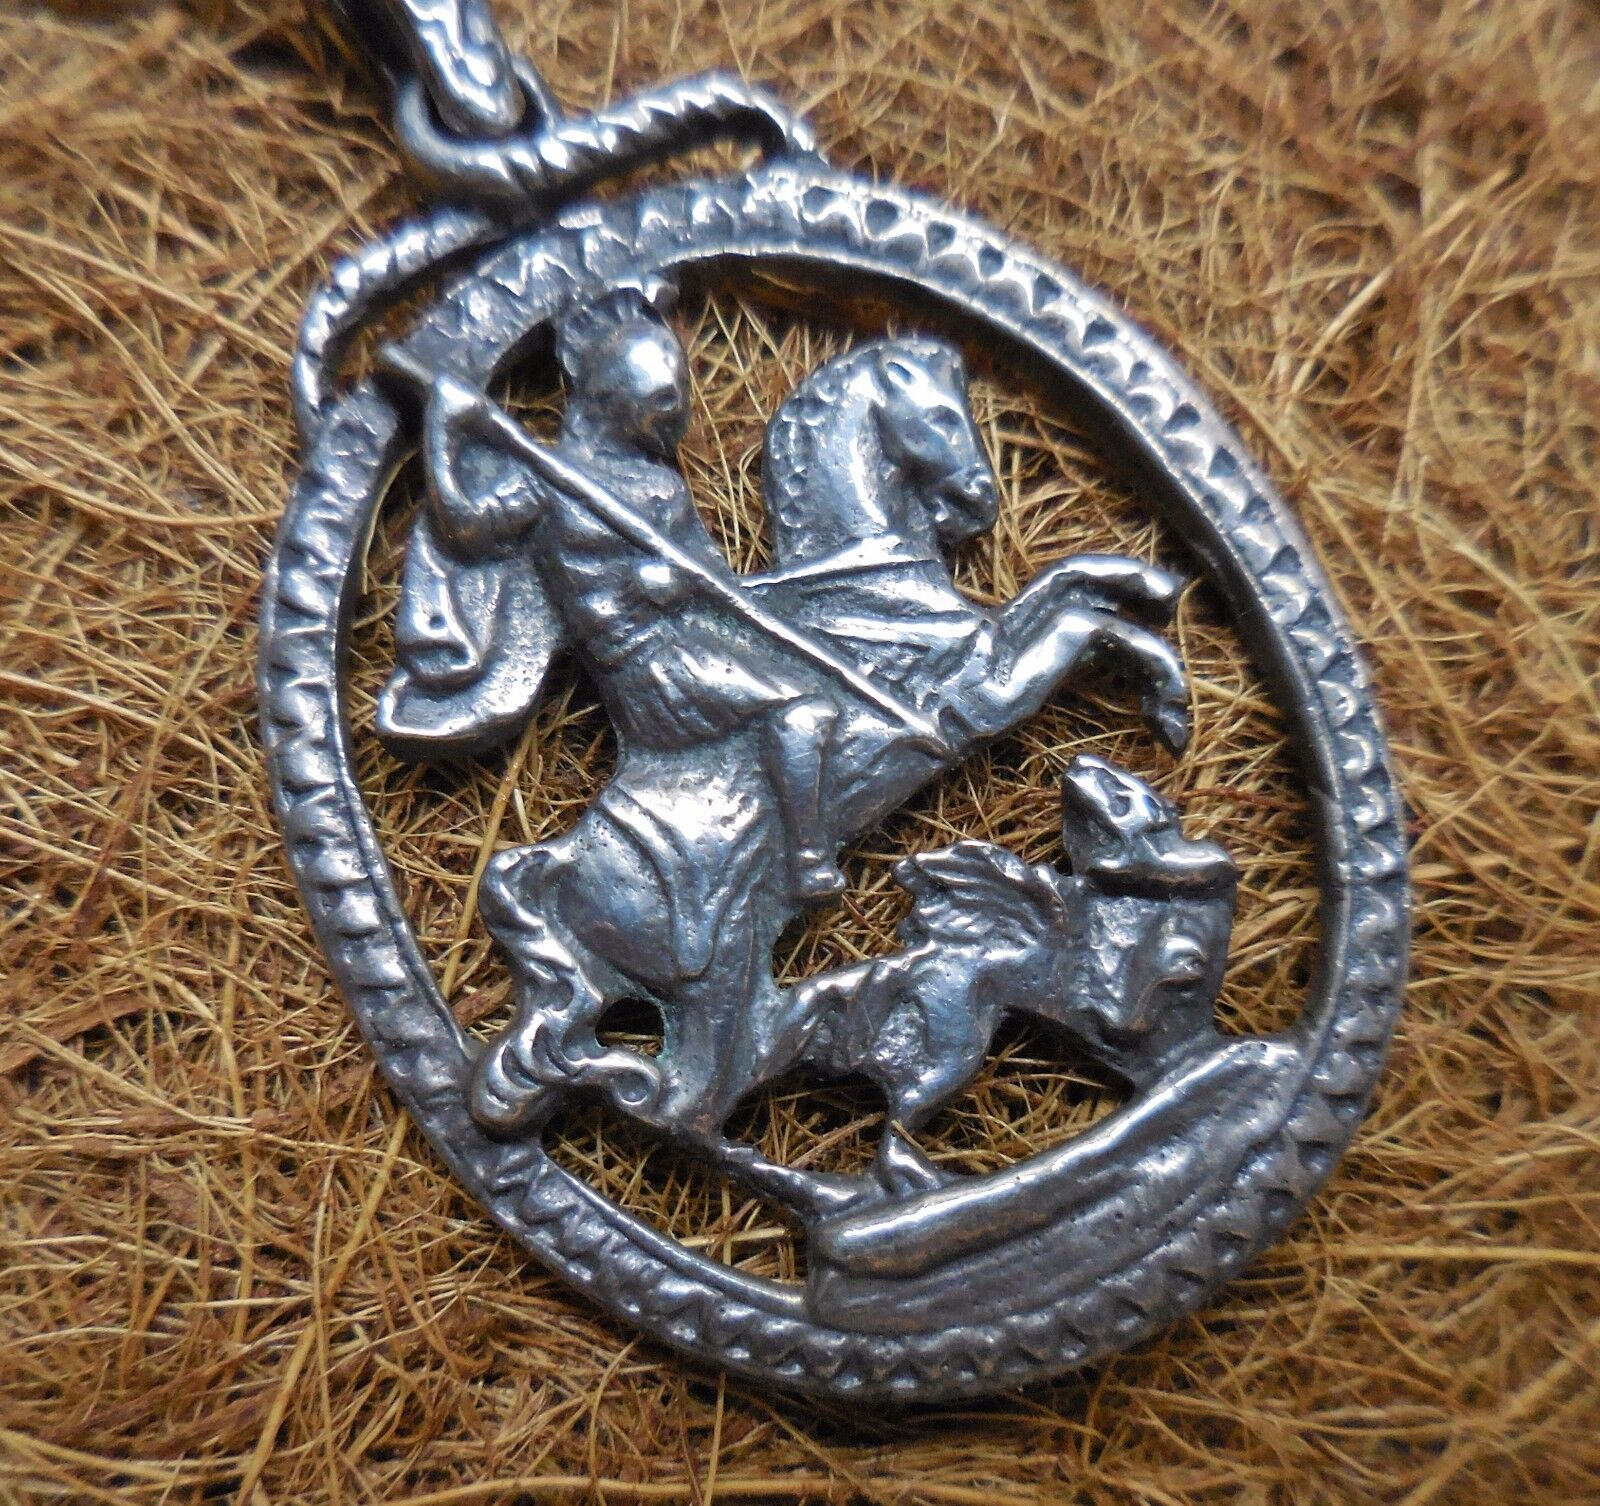 double link bracelet pendant itm chain george st belcher dragon and coin box sterling silver gift medallion the solid